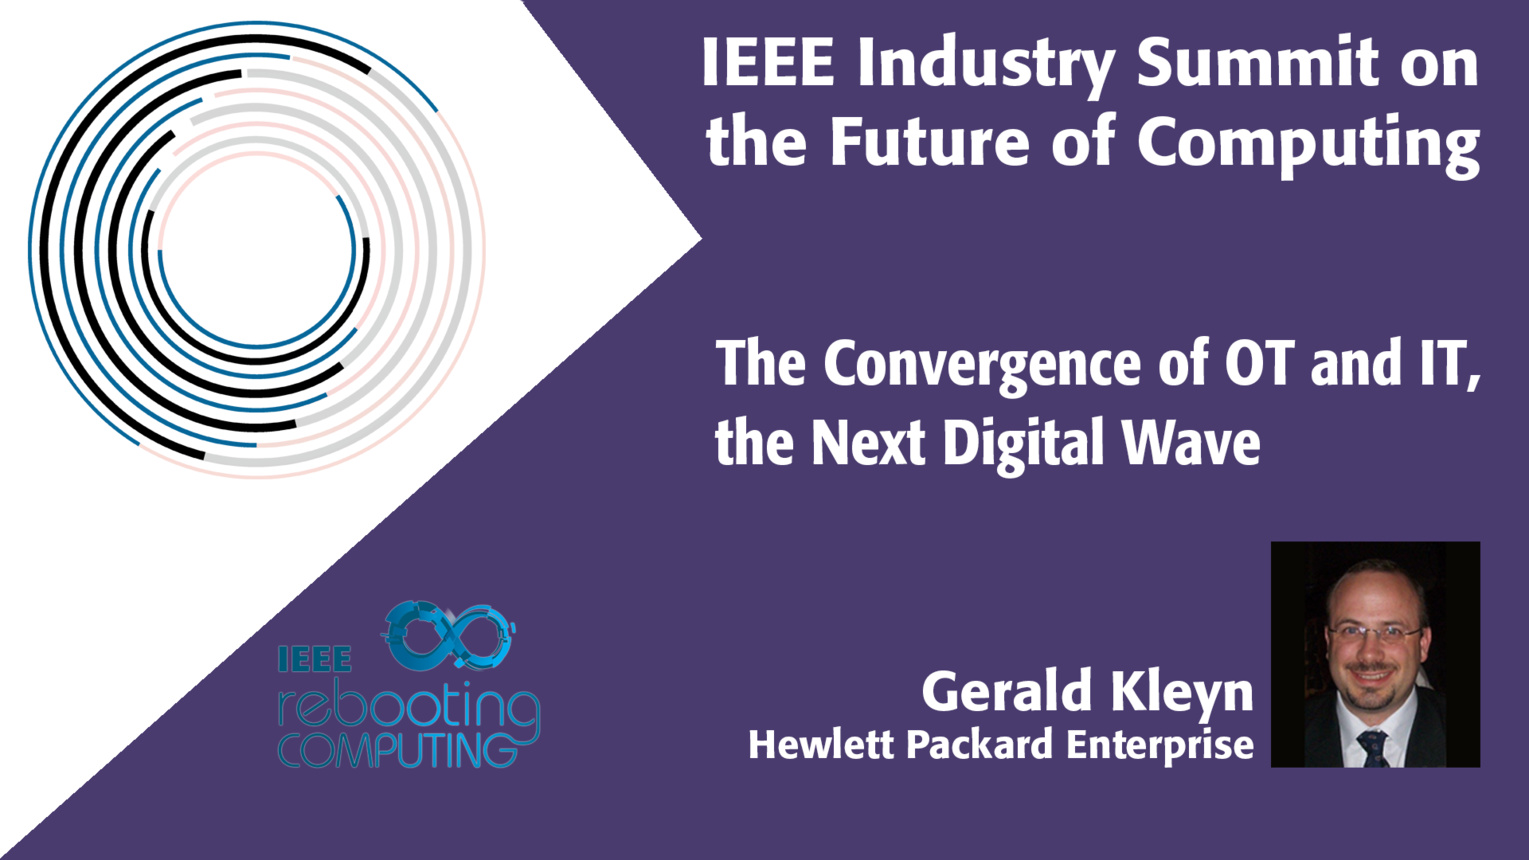 The Convergence of OT and IT, the Next Digital Wave - 2018 IEEE Industry Summit on the Future of Computing